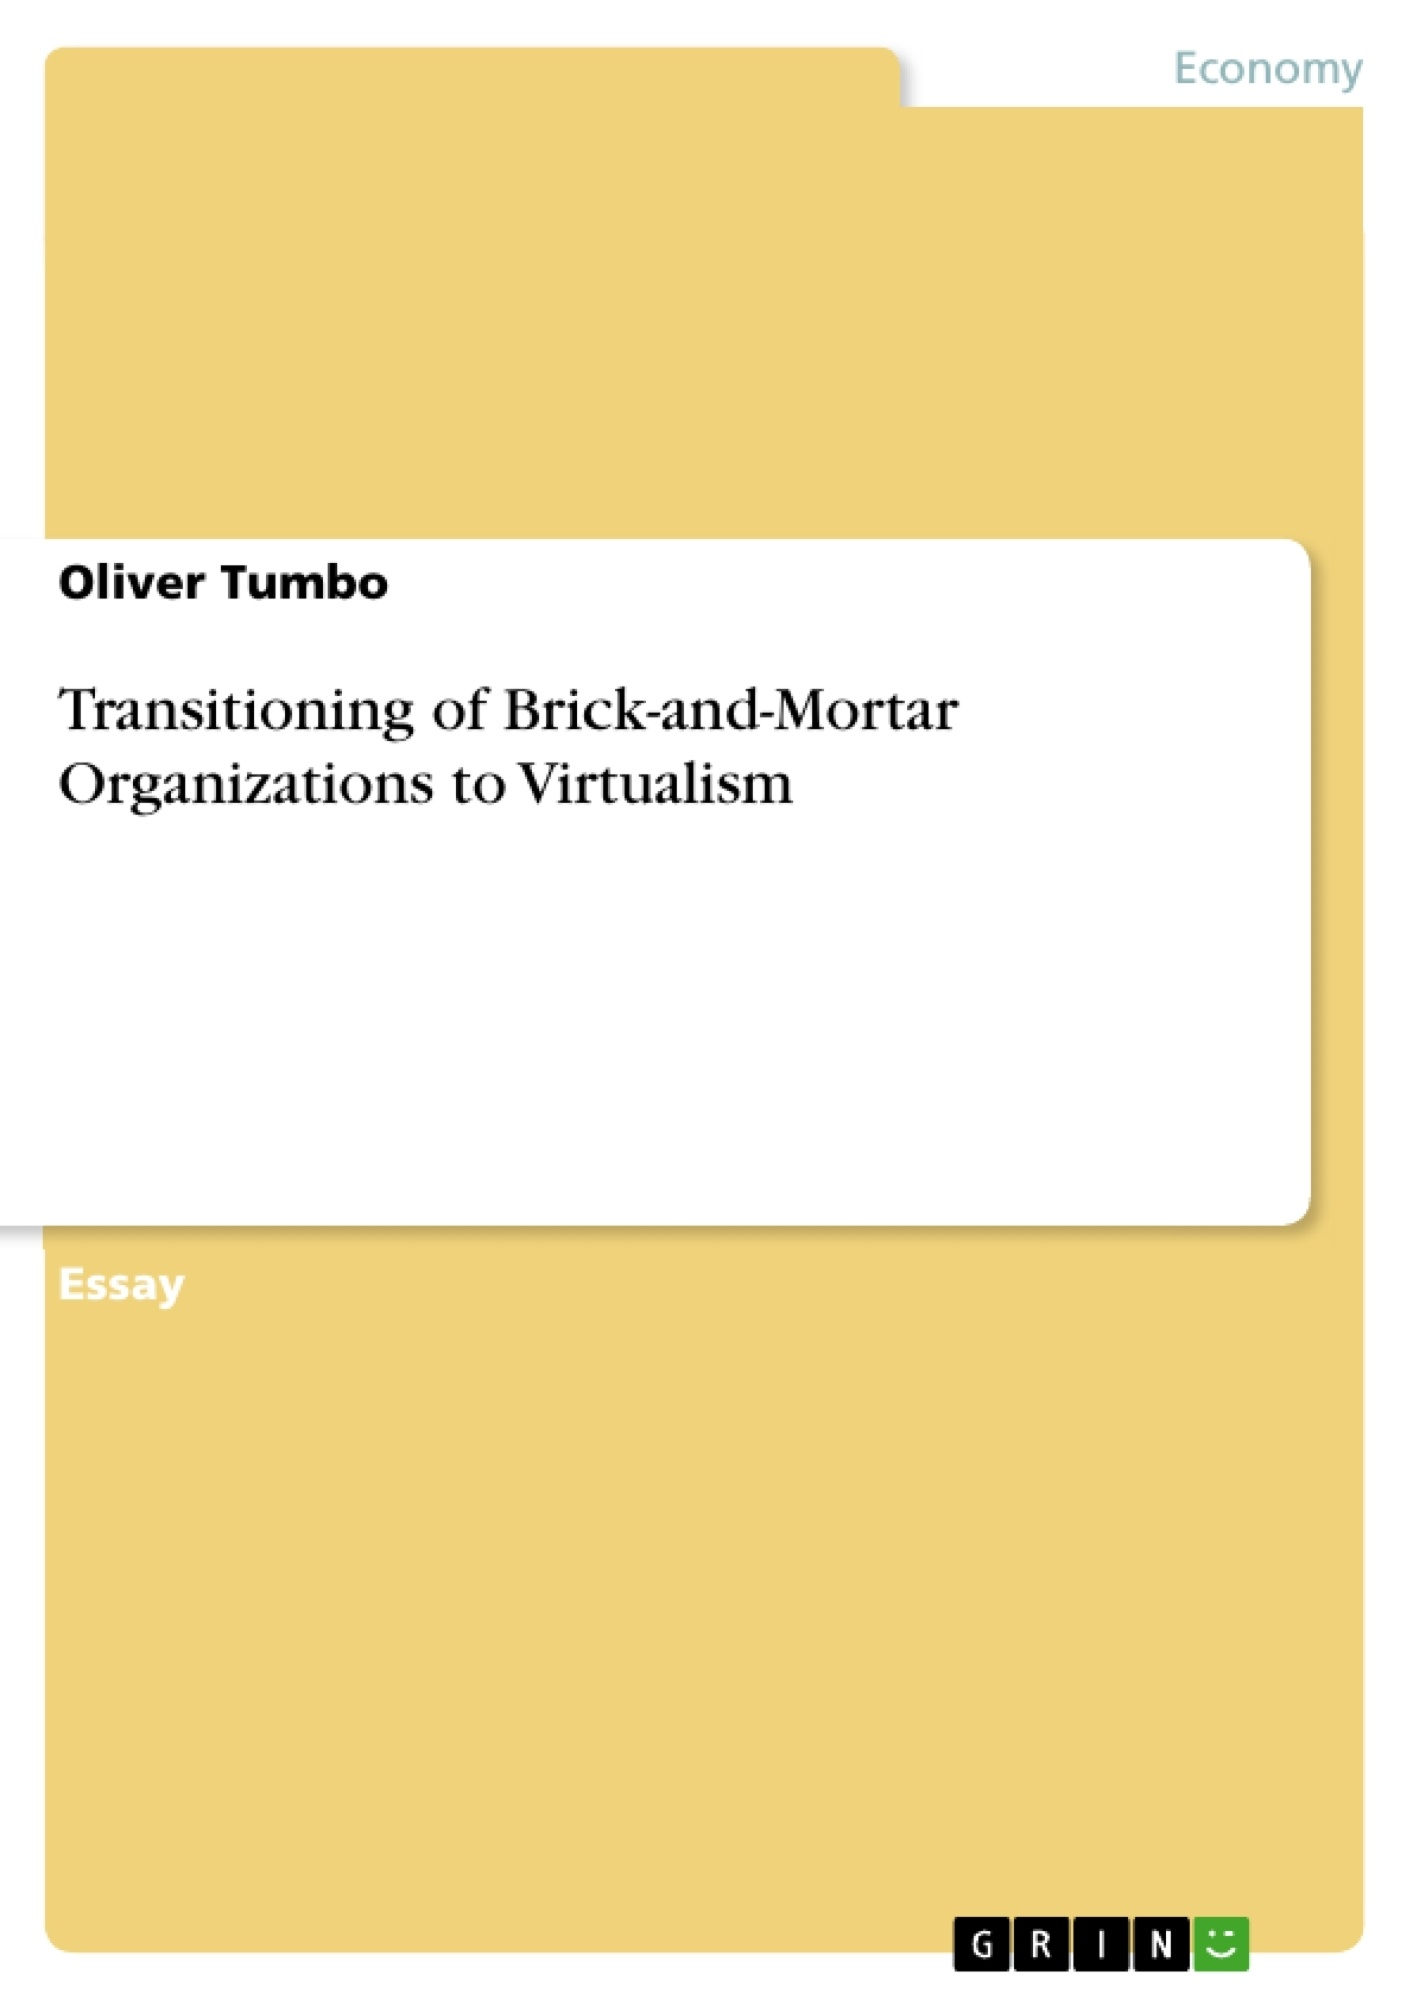 Title: Transitioning of Brick-and-Mortar Organizations to Virtualism